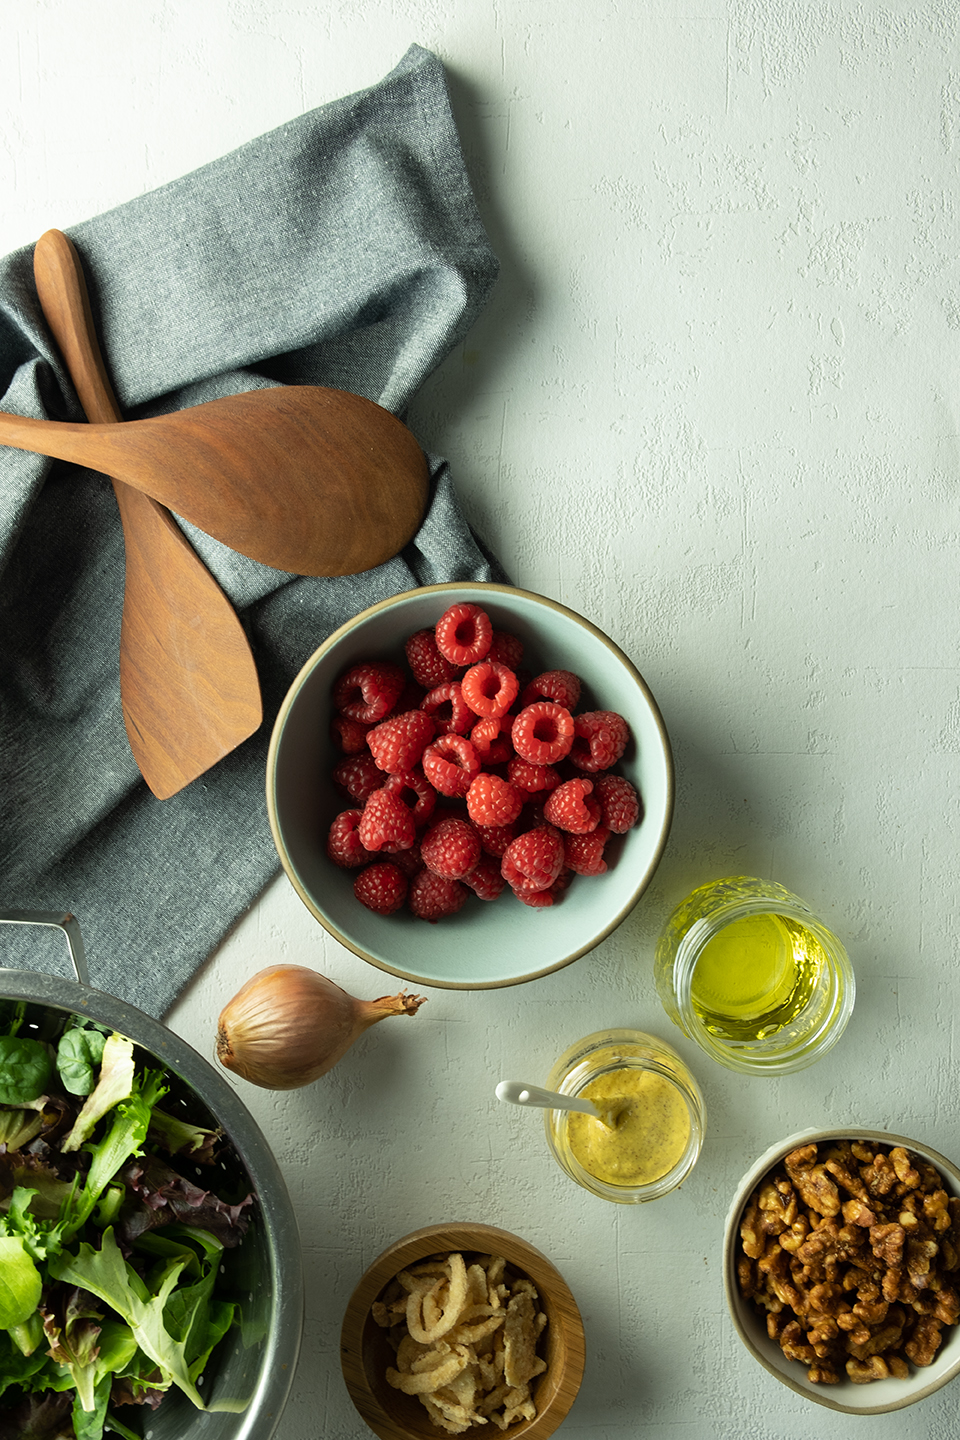 ingredients for fresh summer salad with raspberries and walnuts